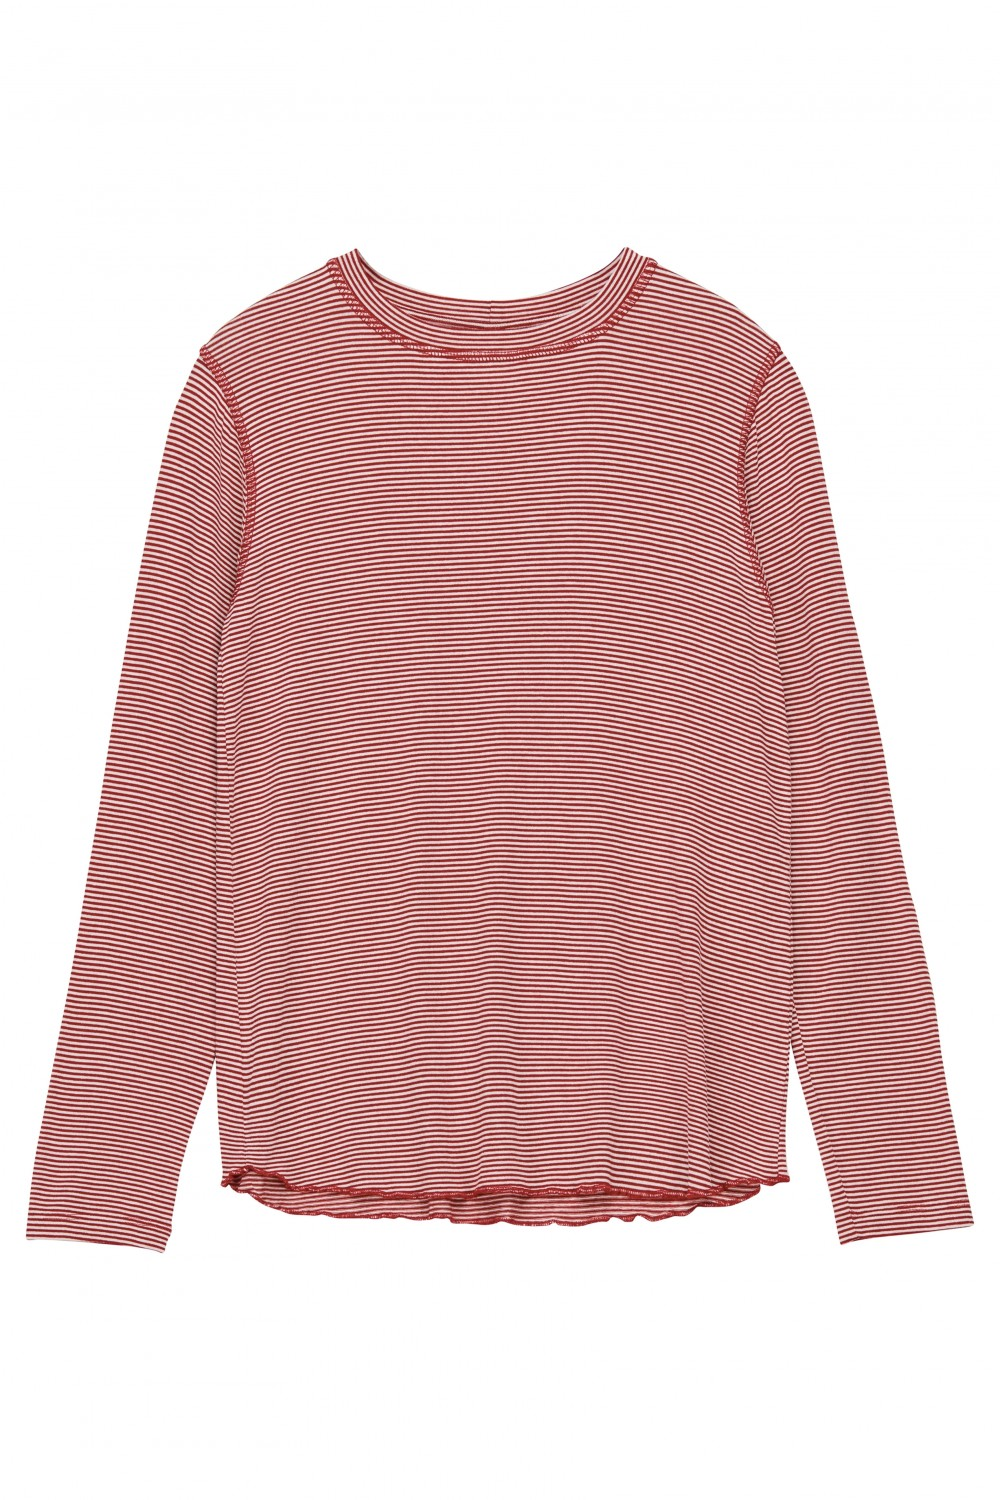 Iben Victor LS Red Striped